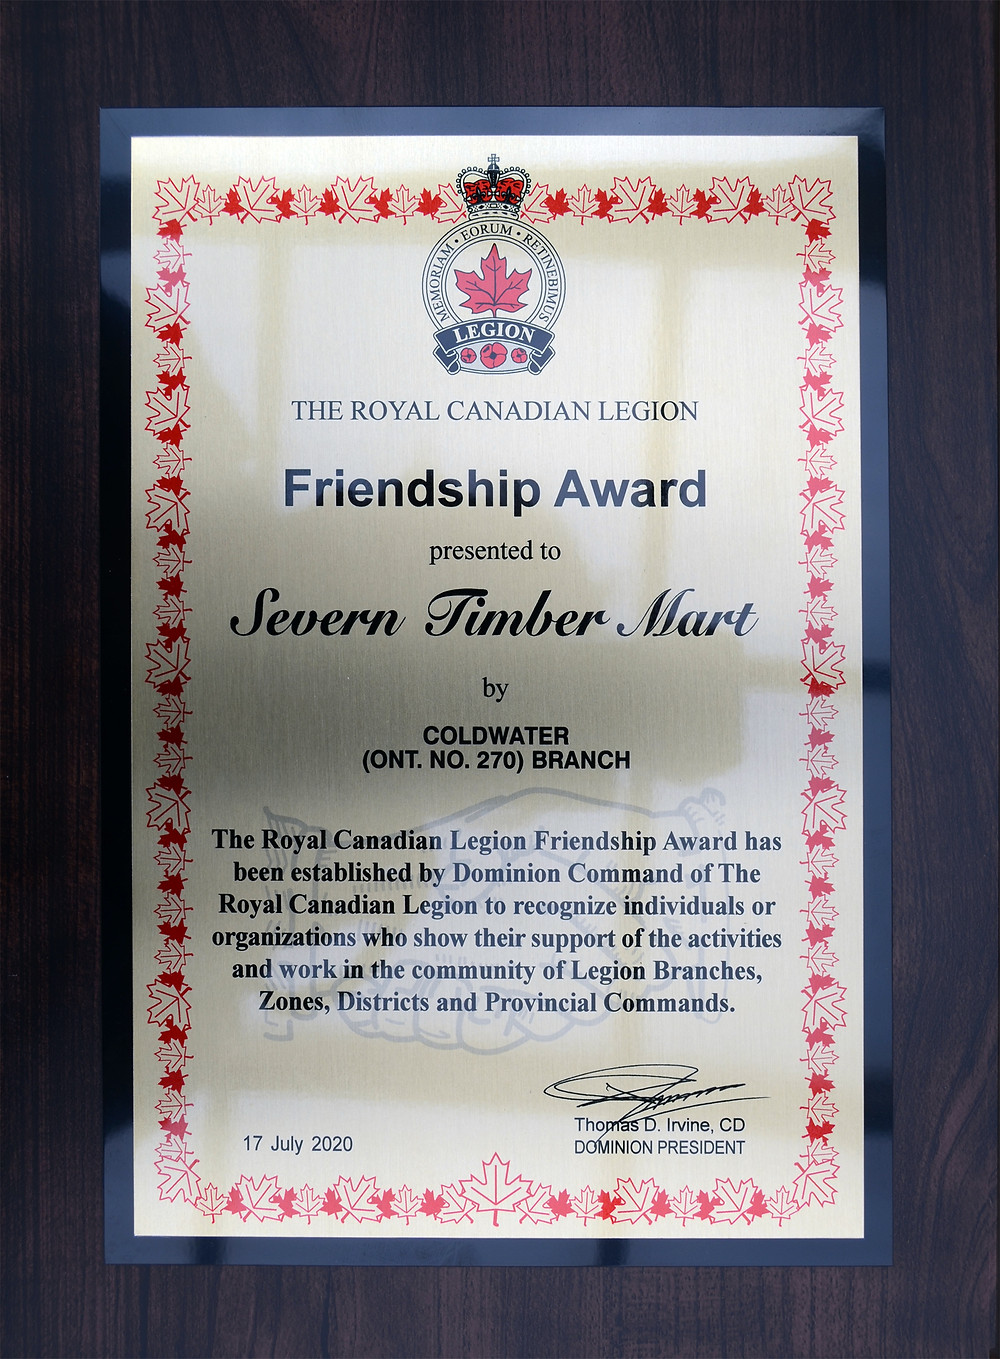 The Royal Canadian Legion Friendship Award to Severn Timber Mart.